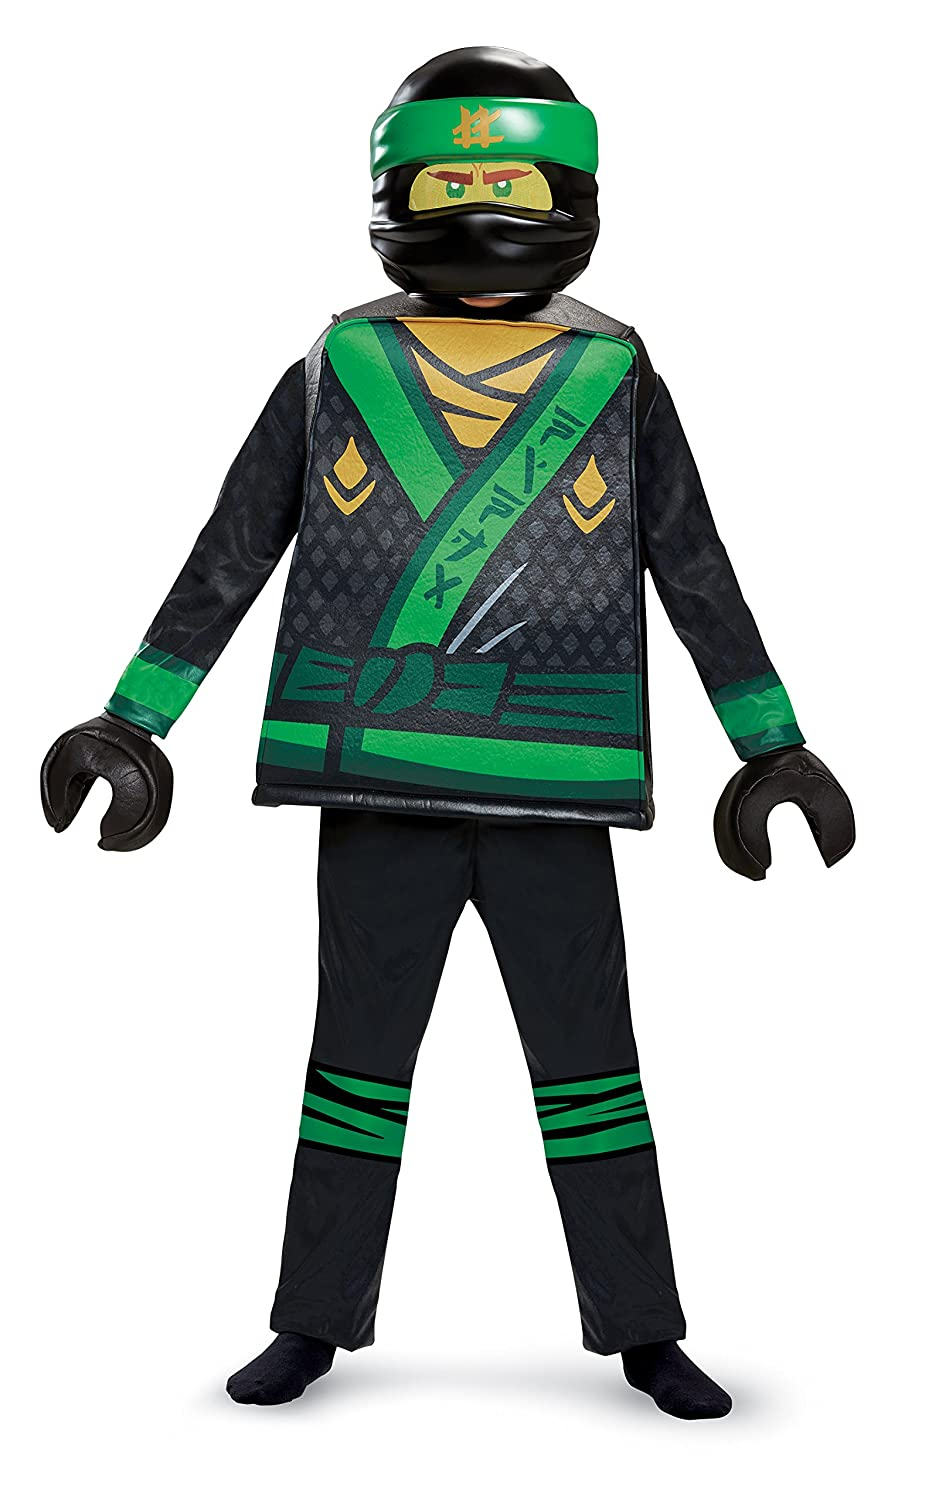 Lloyd LEGO Ninjago Movie Deluxe Costume, Green, Small (4-6)